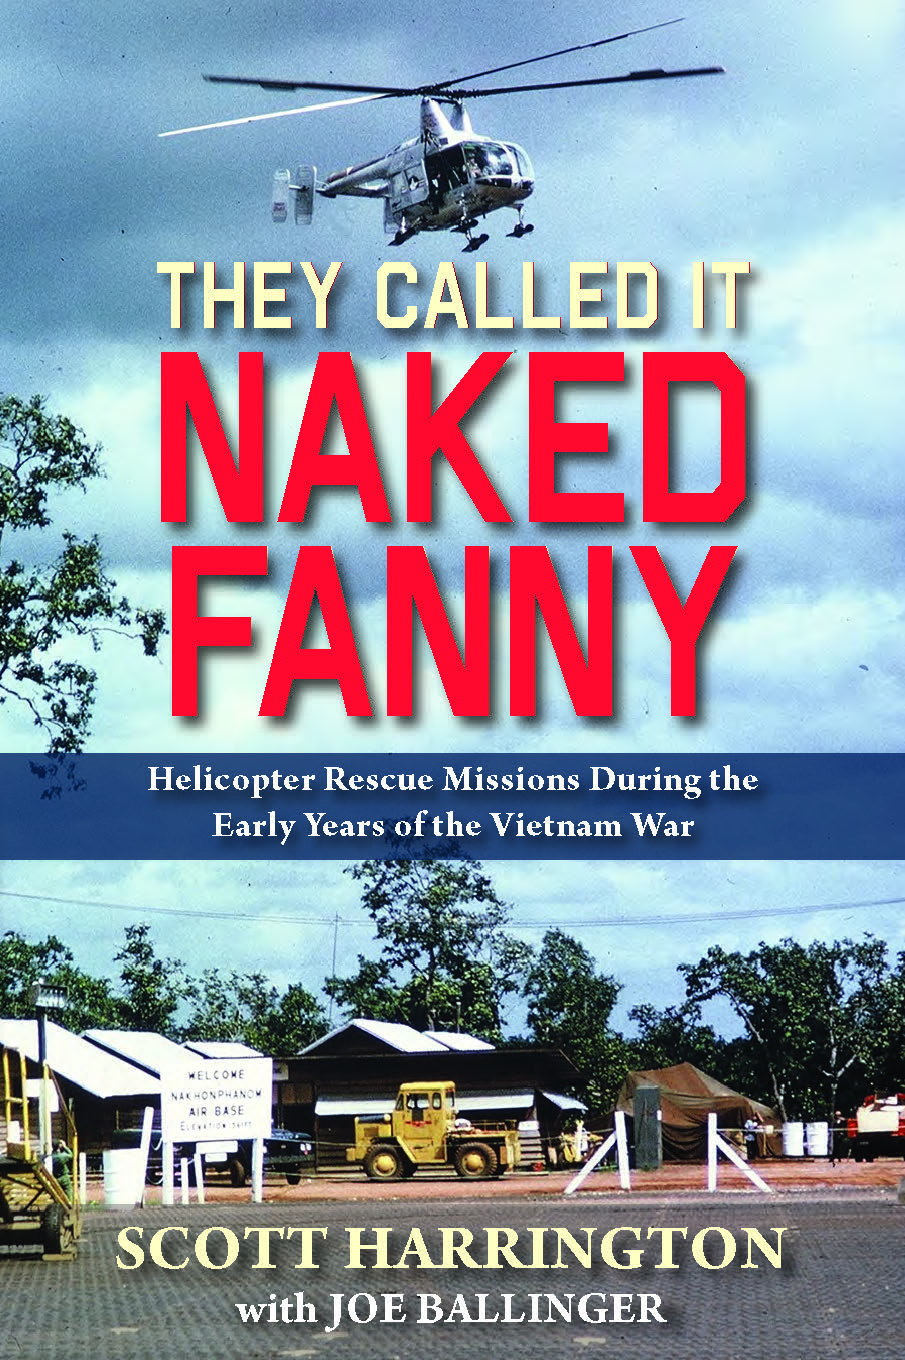 They Called It Naked Fanny